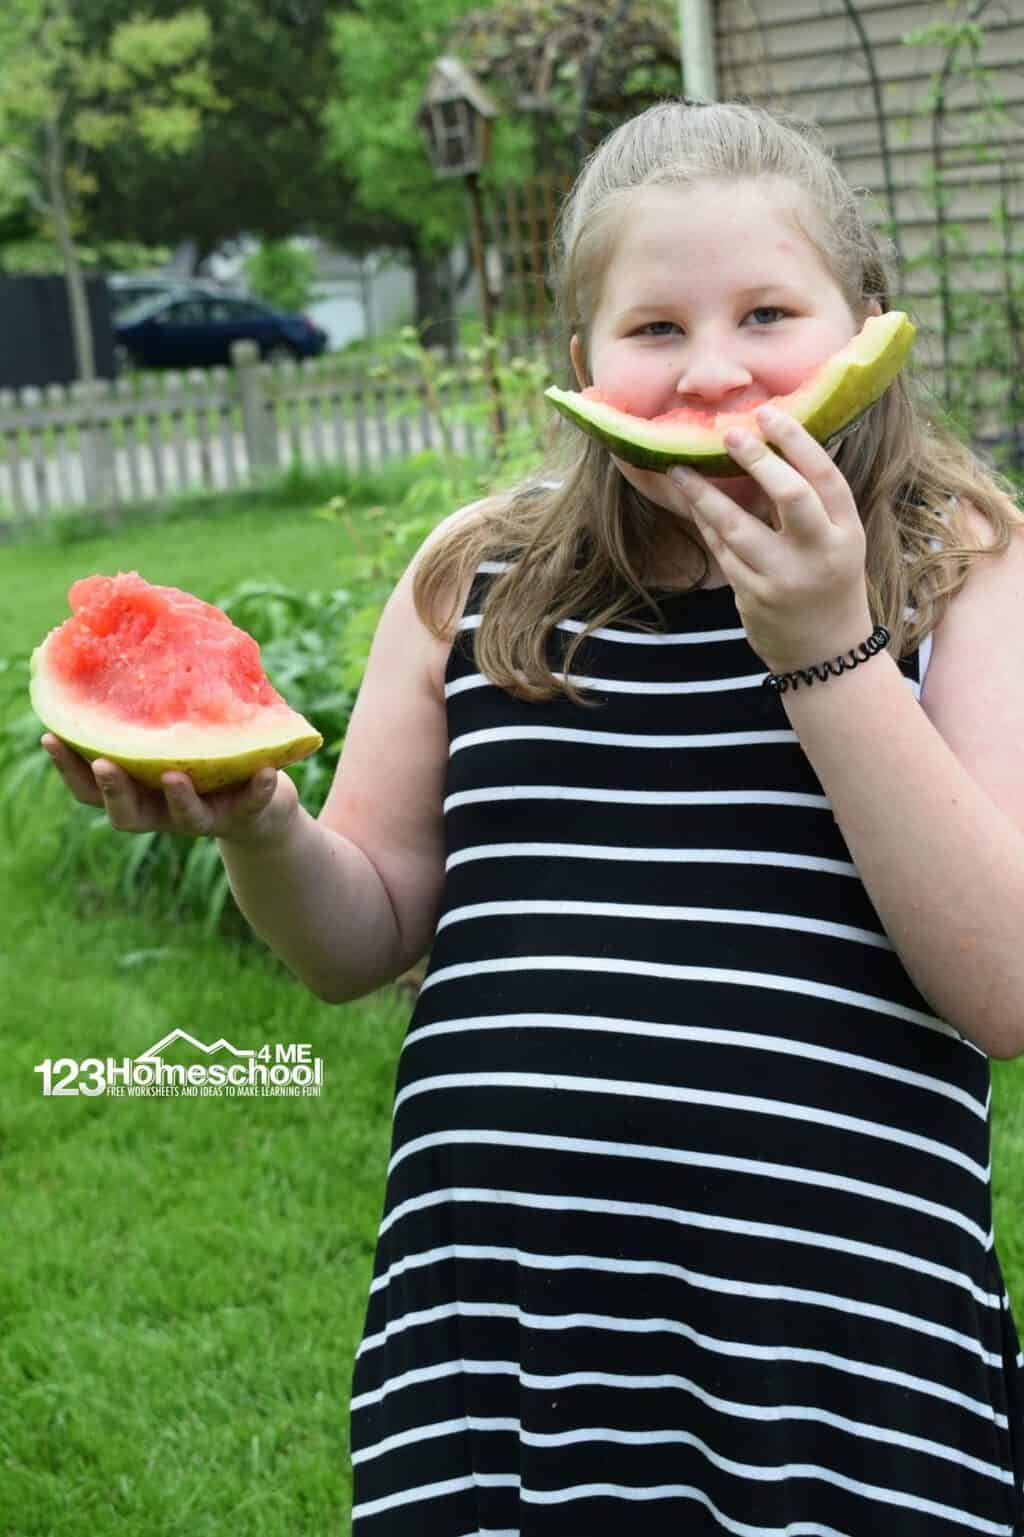 Exploding Watermelon Science Cool Science Experiments Science Experiments Kids Watermelon [ 1537 x 1024 Pixel ]